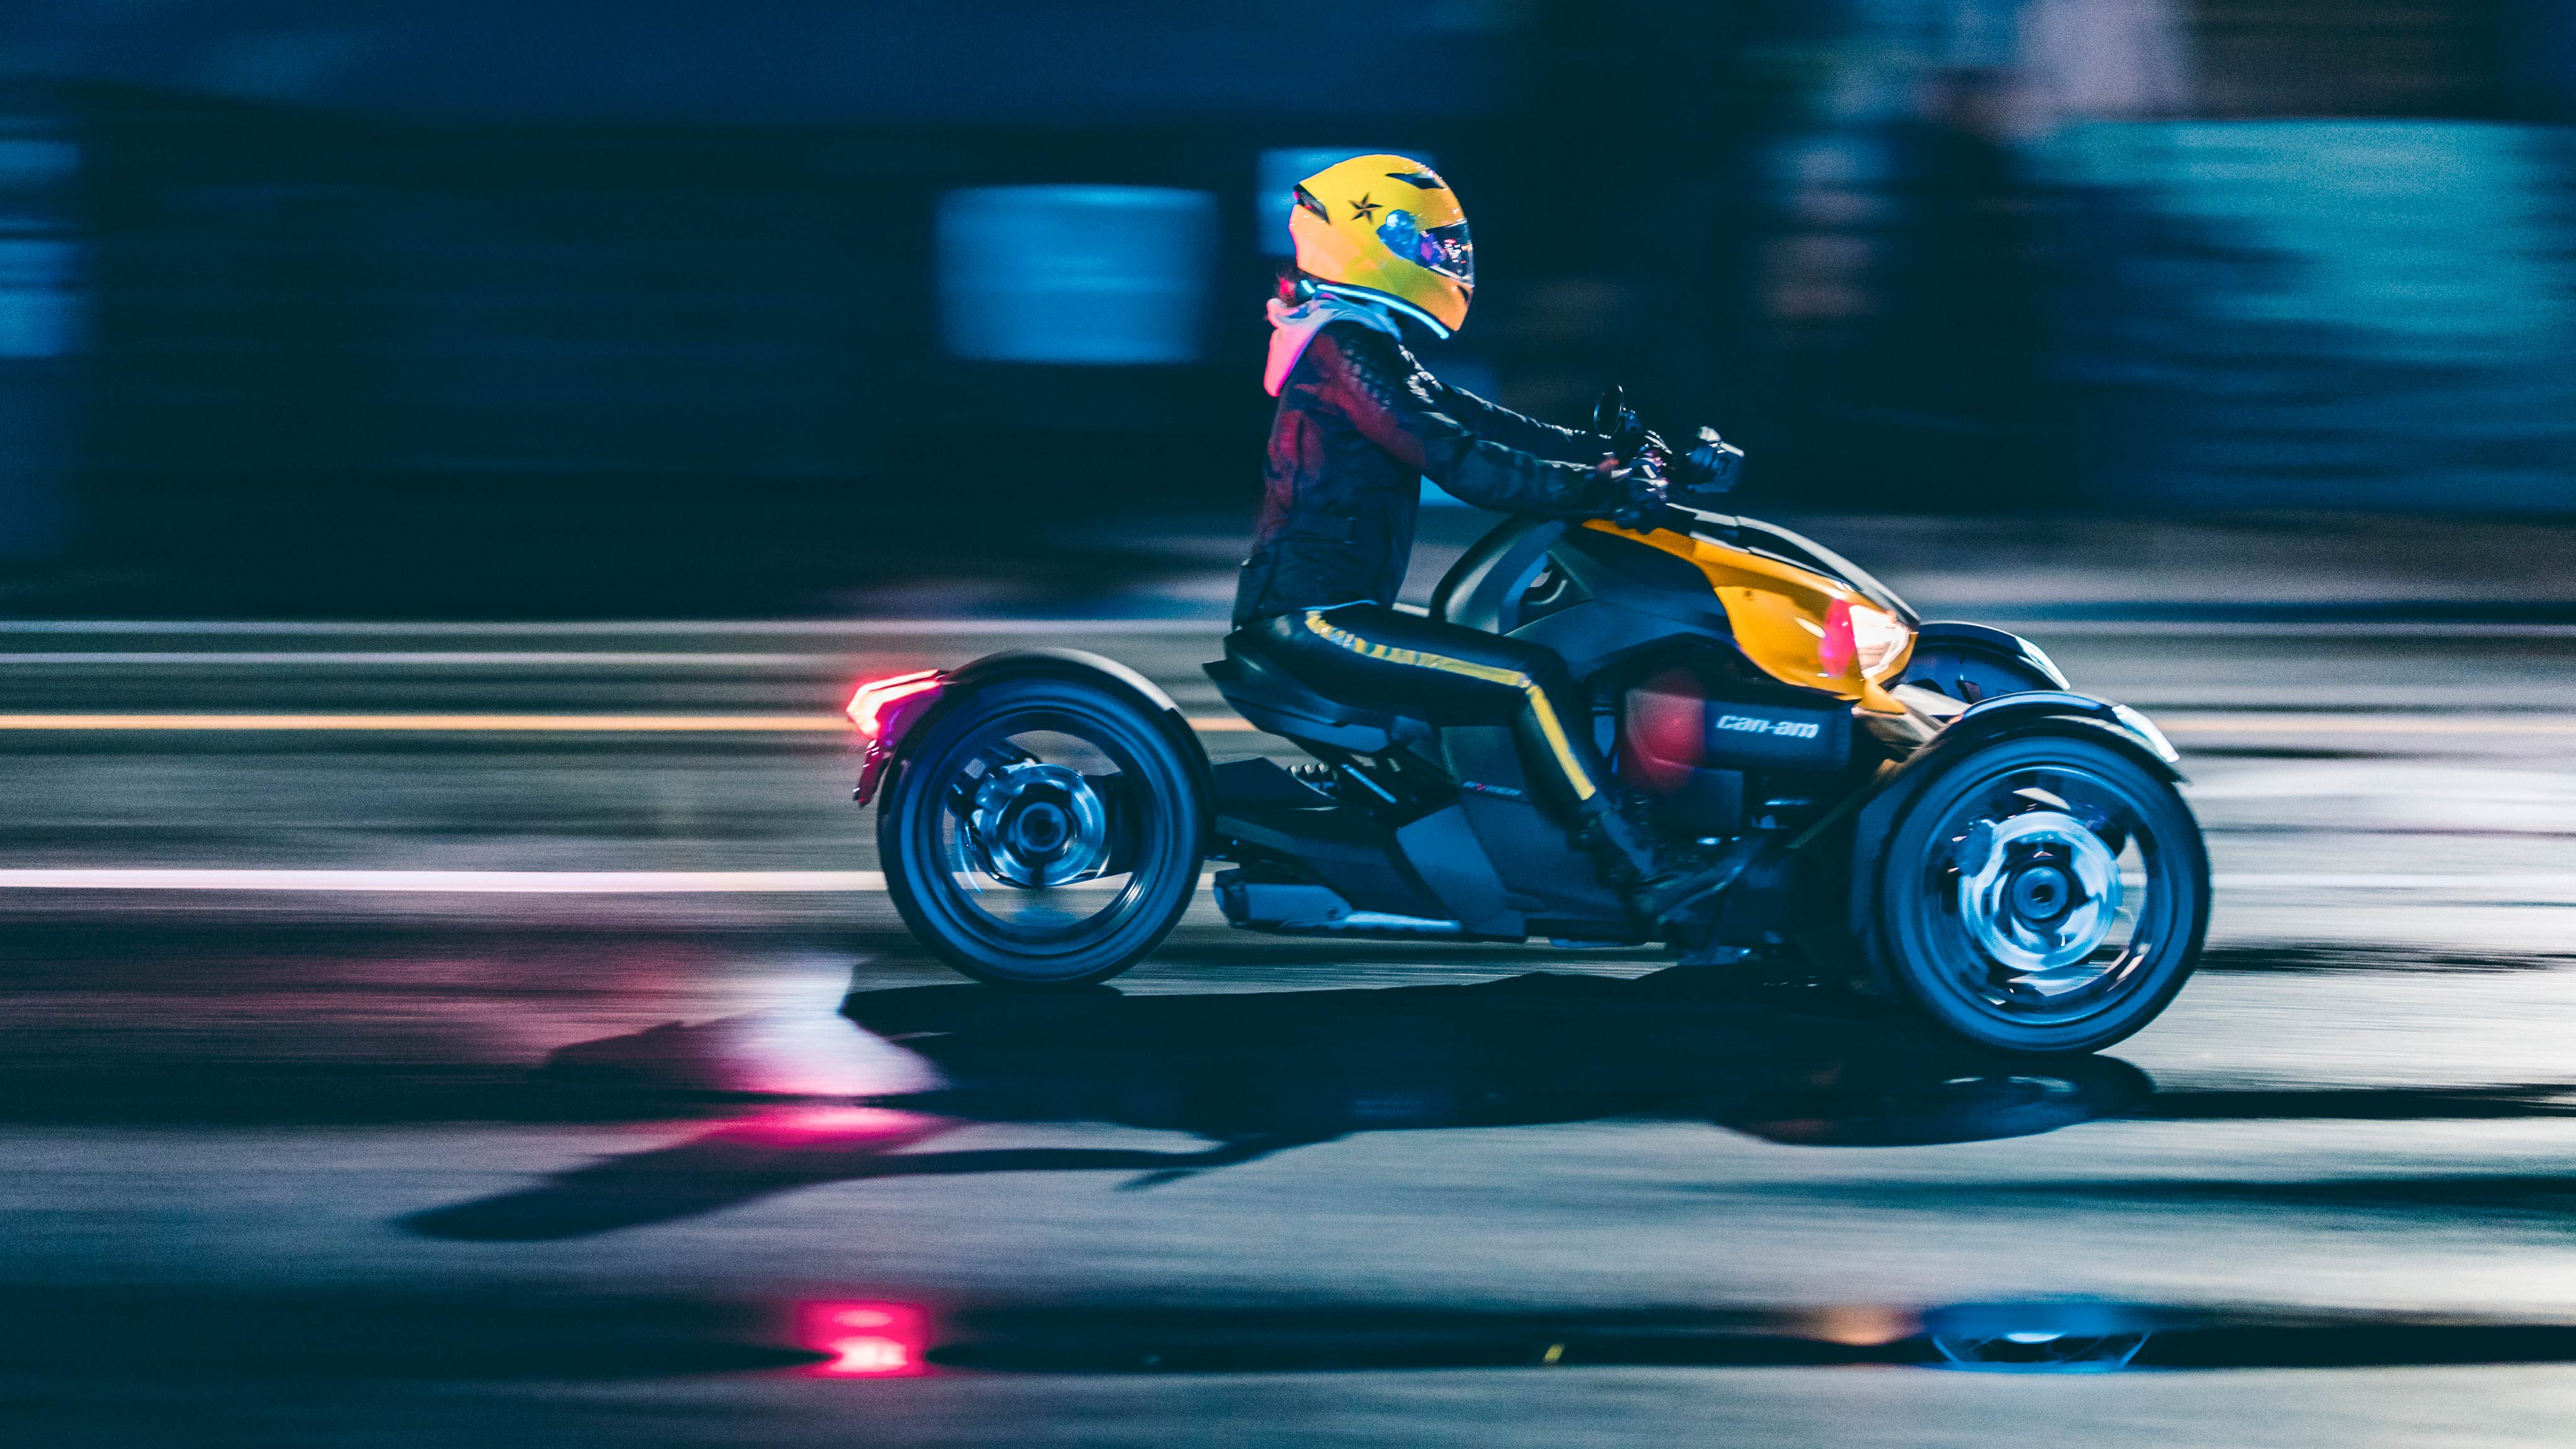 Woman riding Can-Am Ryker vehicle with yellow helmet